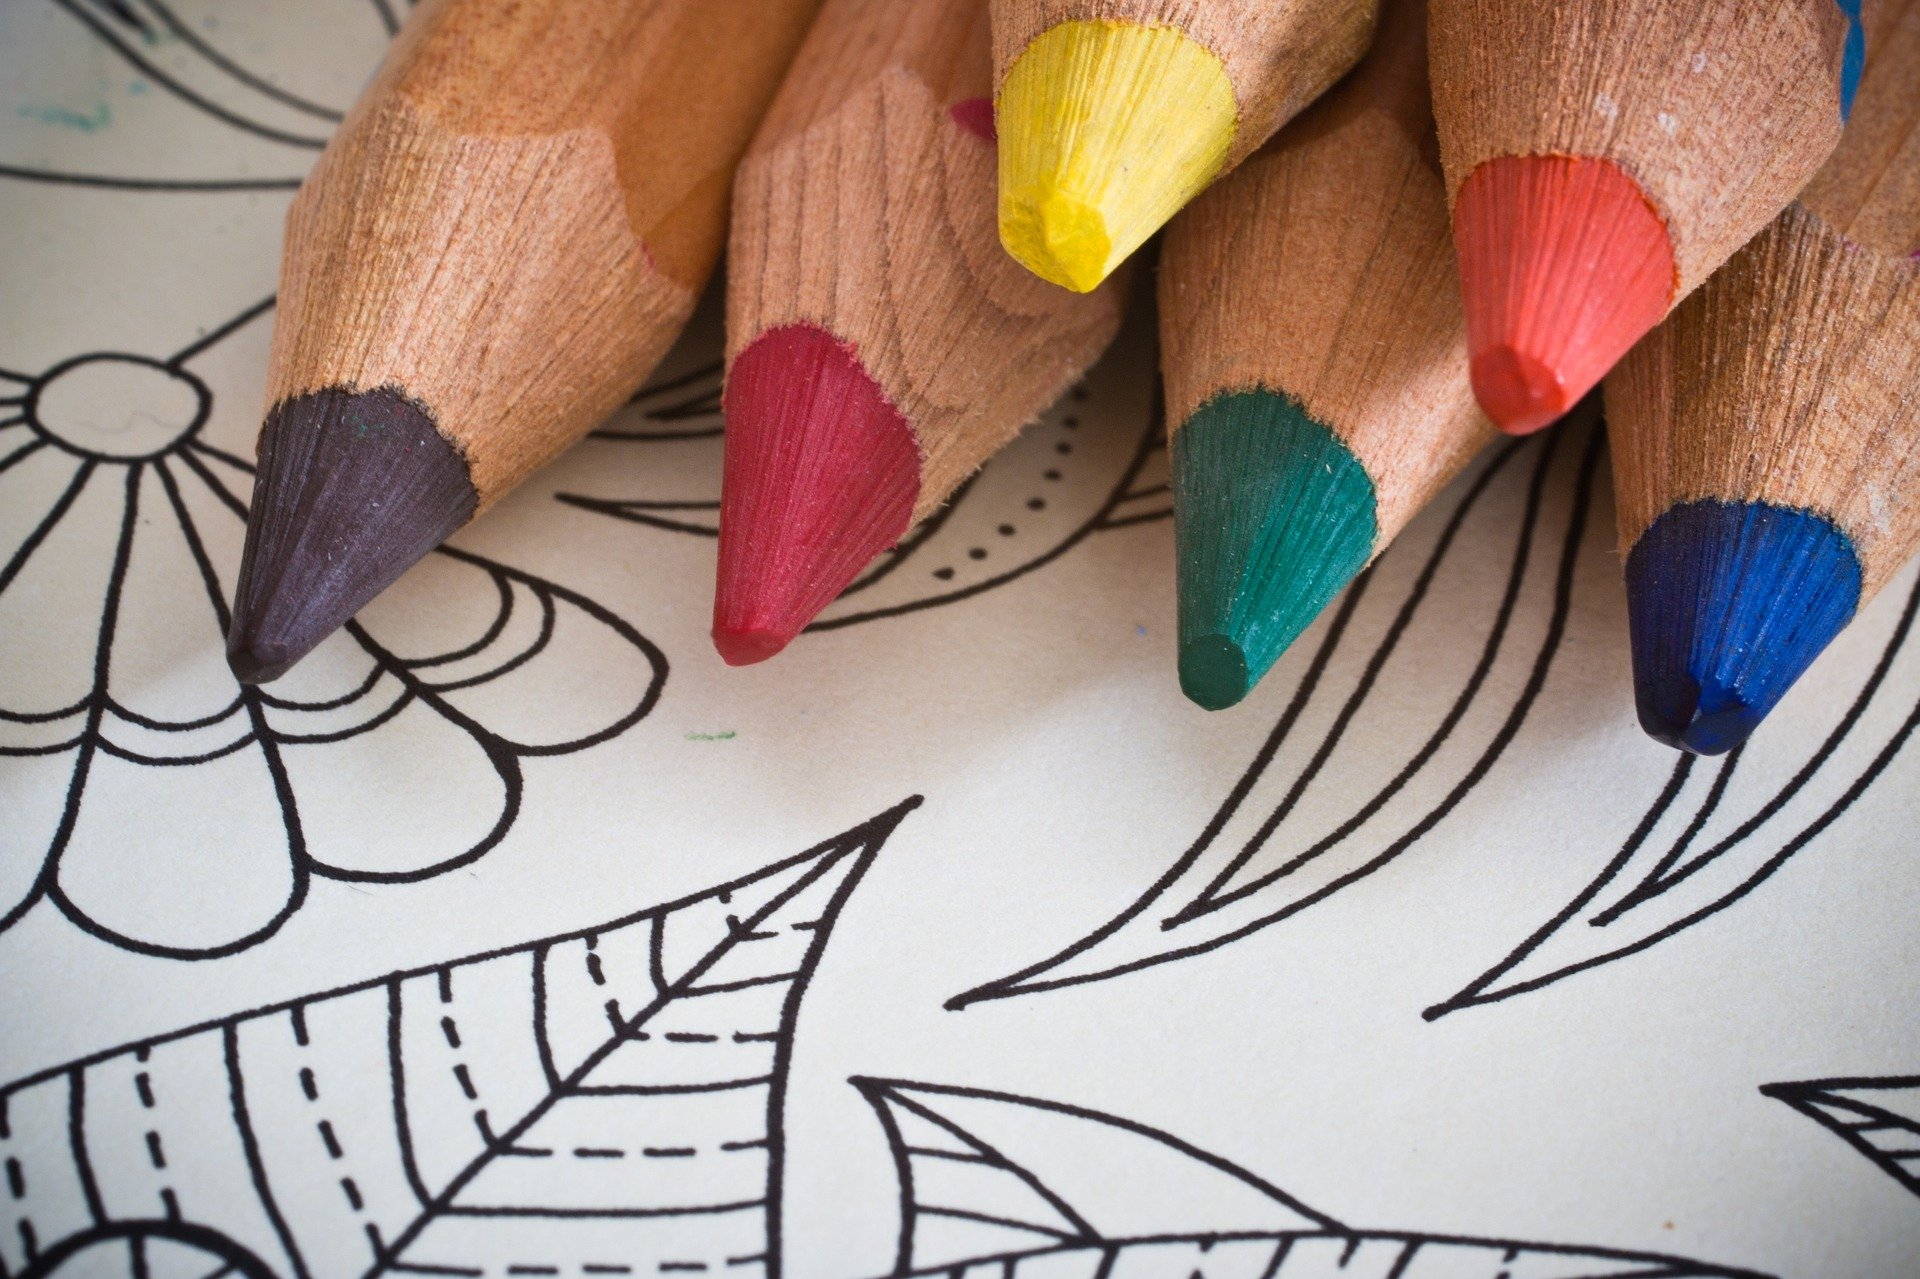 coloring-book-for-adults-1396860_1920